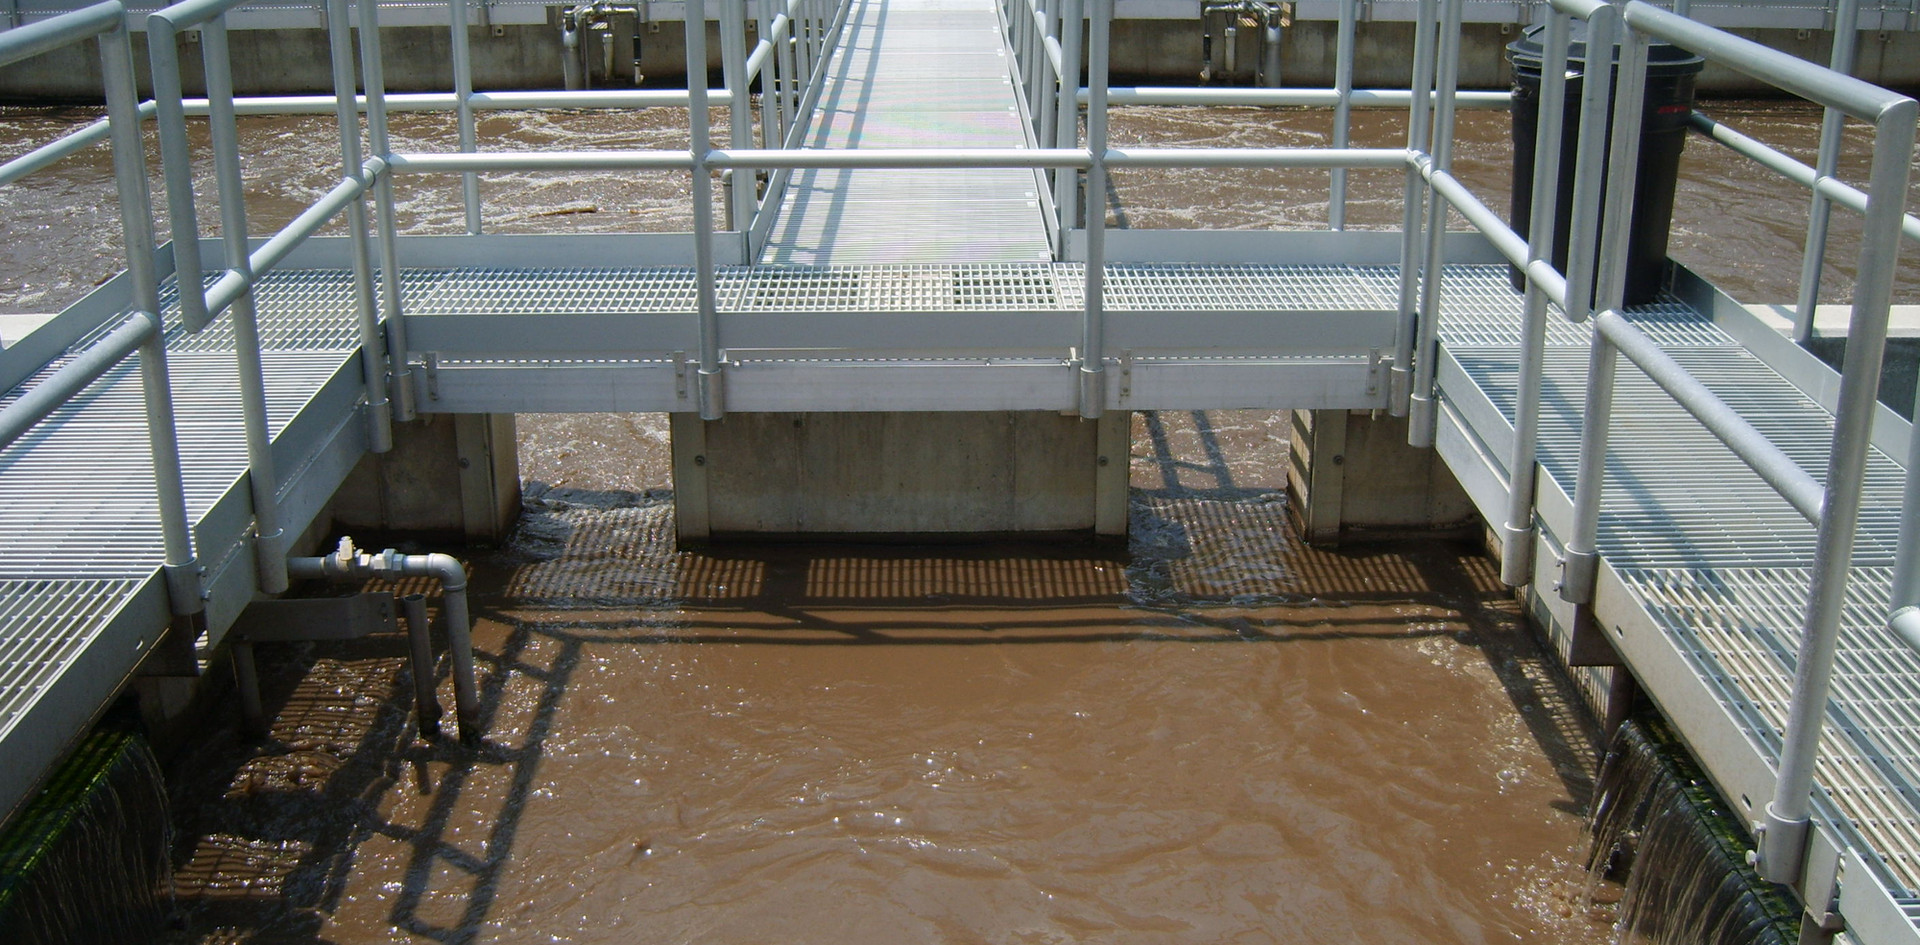 Aero-Mod continuous flow BNR treatment plant utilizing common wall construction